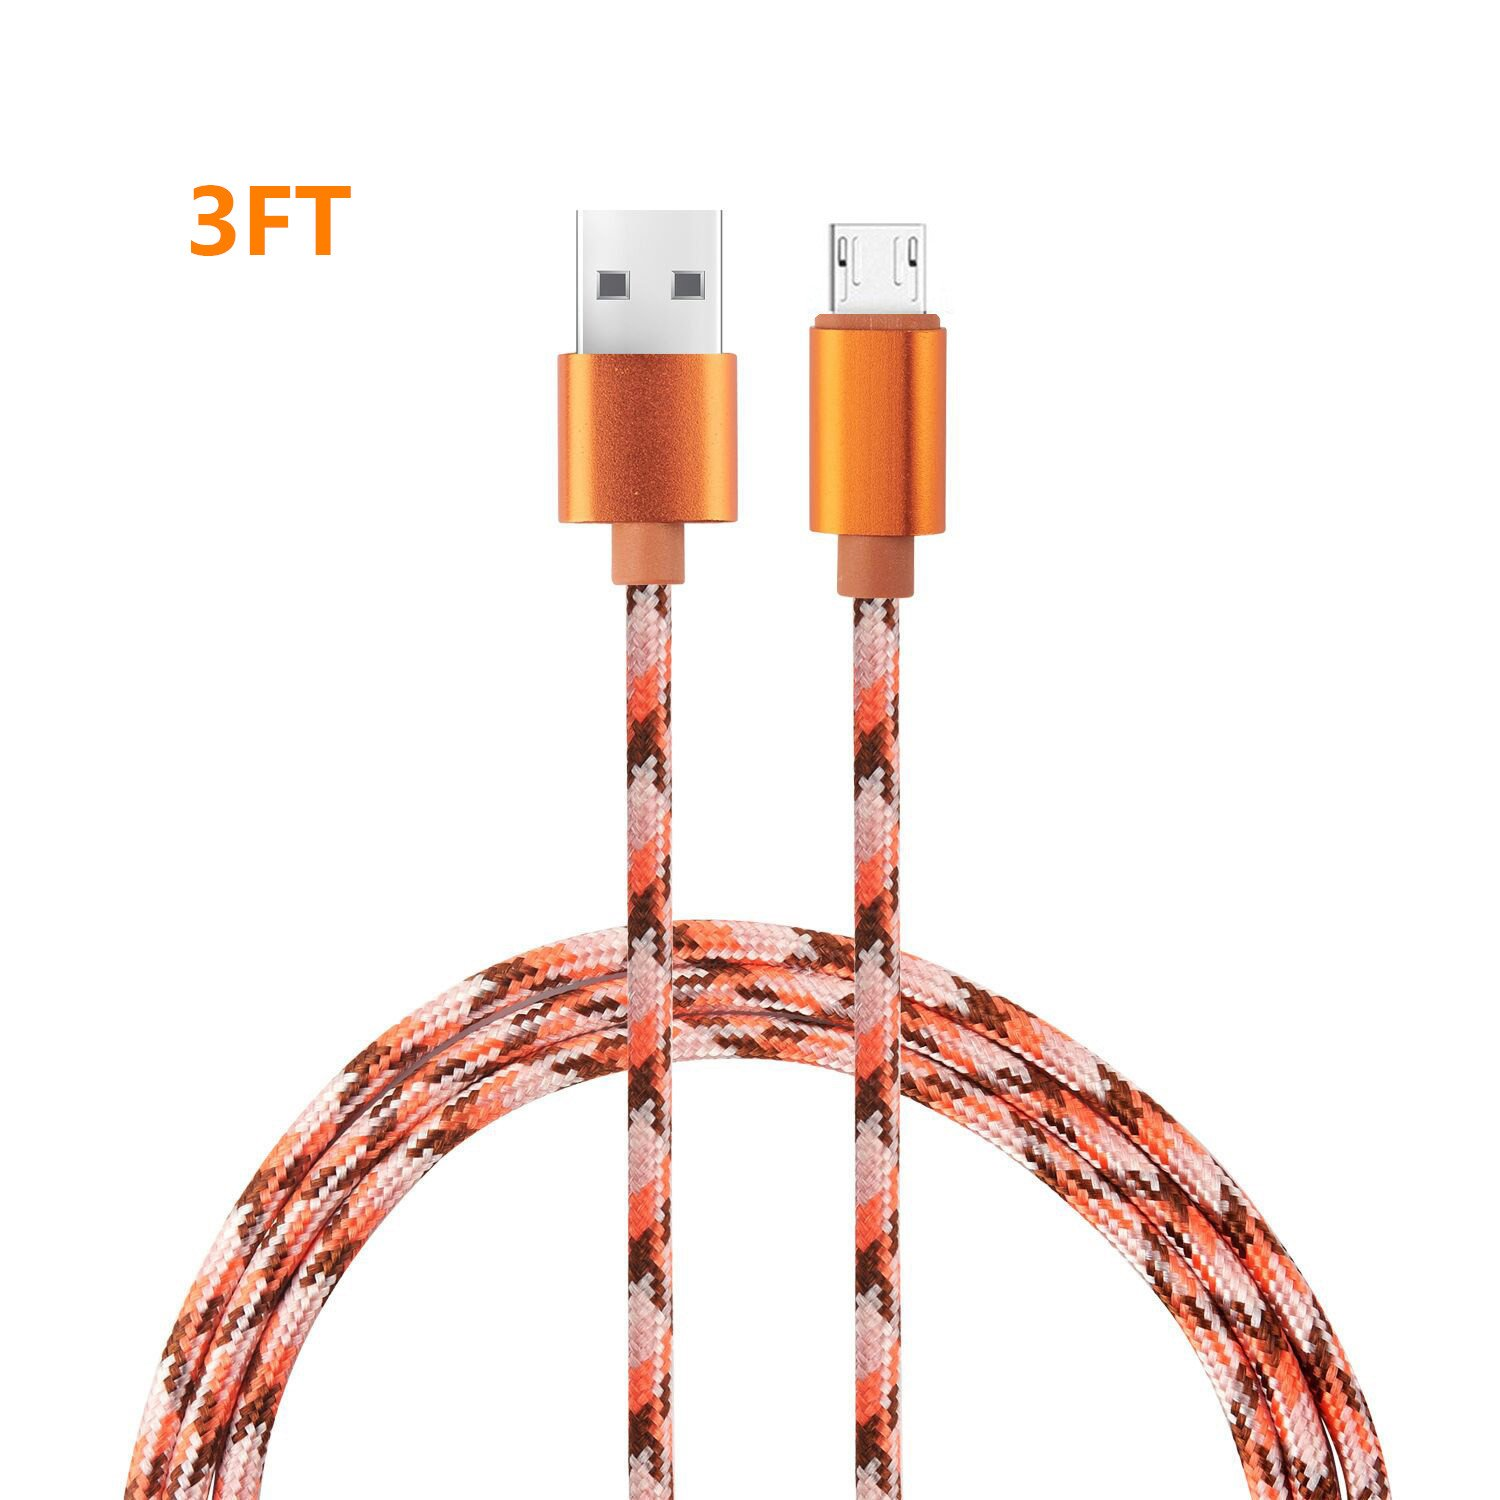 Micro USB Cable,Binguowang Nylon Braided Android Charger Cord fast charging Sync Cable for Samsung,Galaxy Tablet,HTC,LG,Nokia,Motorola, Android Smart phones and More. (Camo) (Gold 1Pack 3FT)